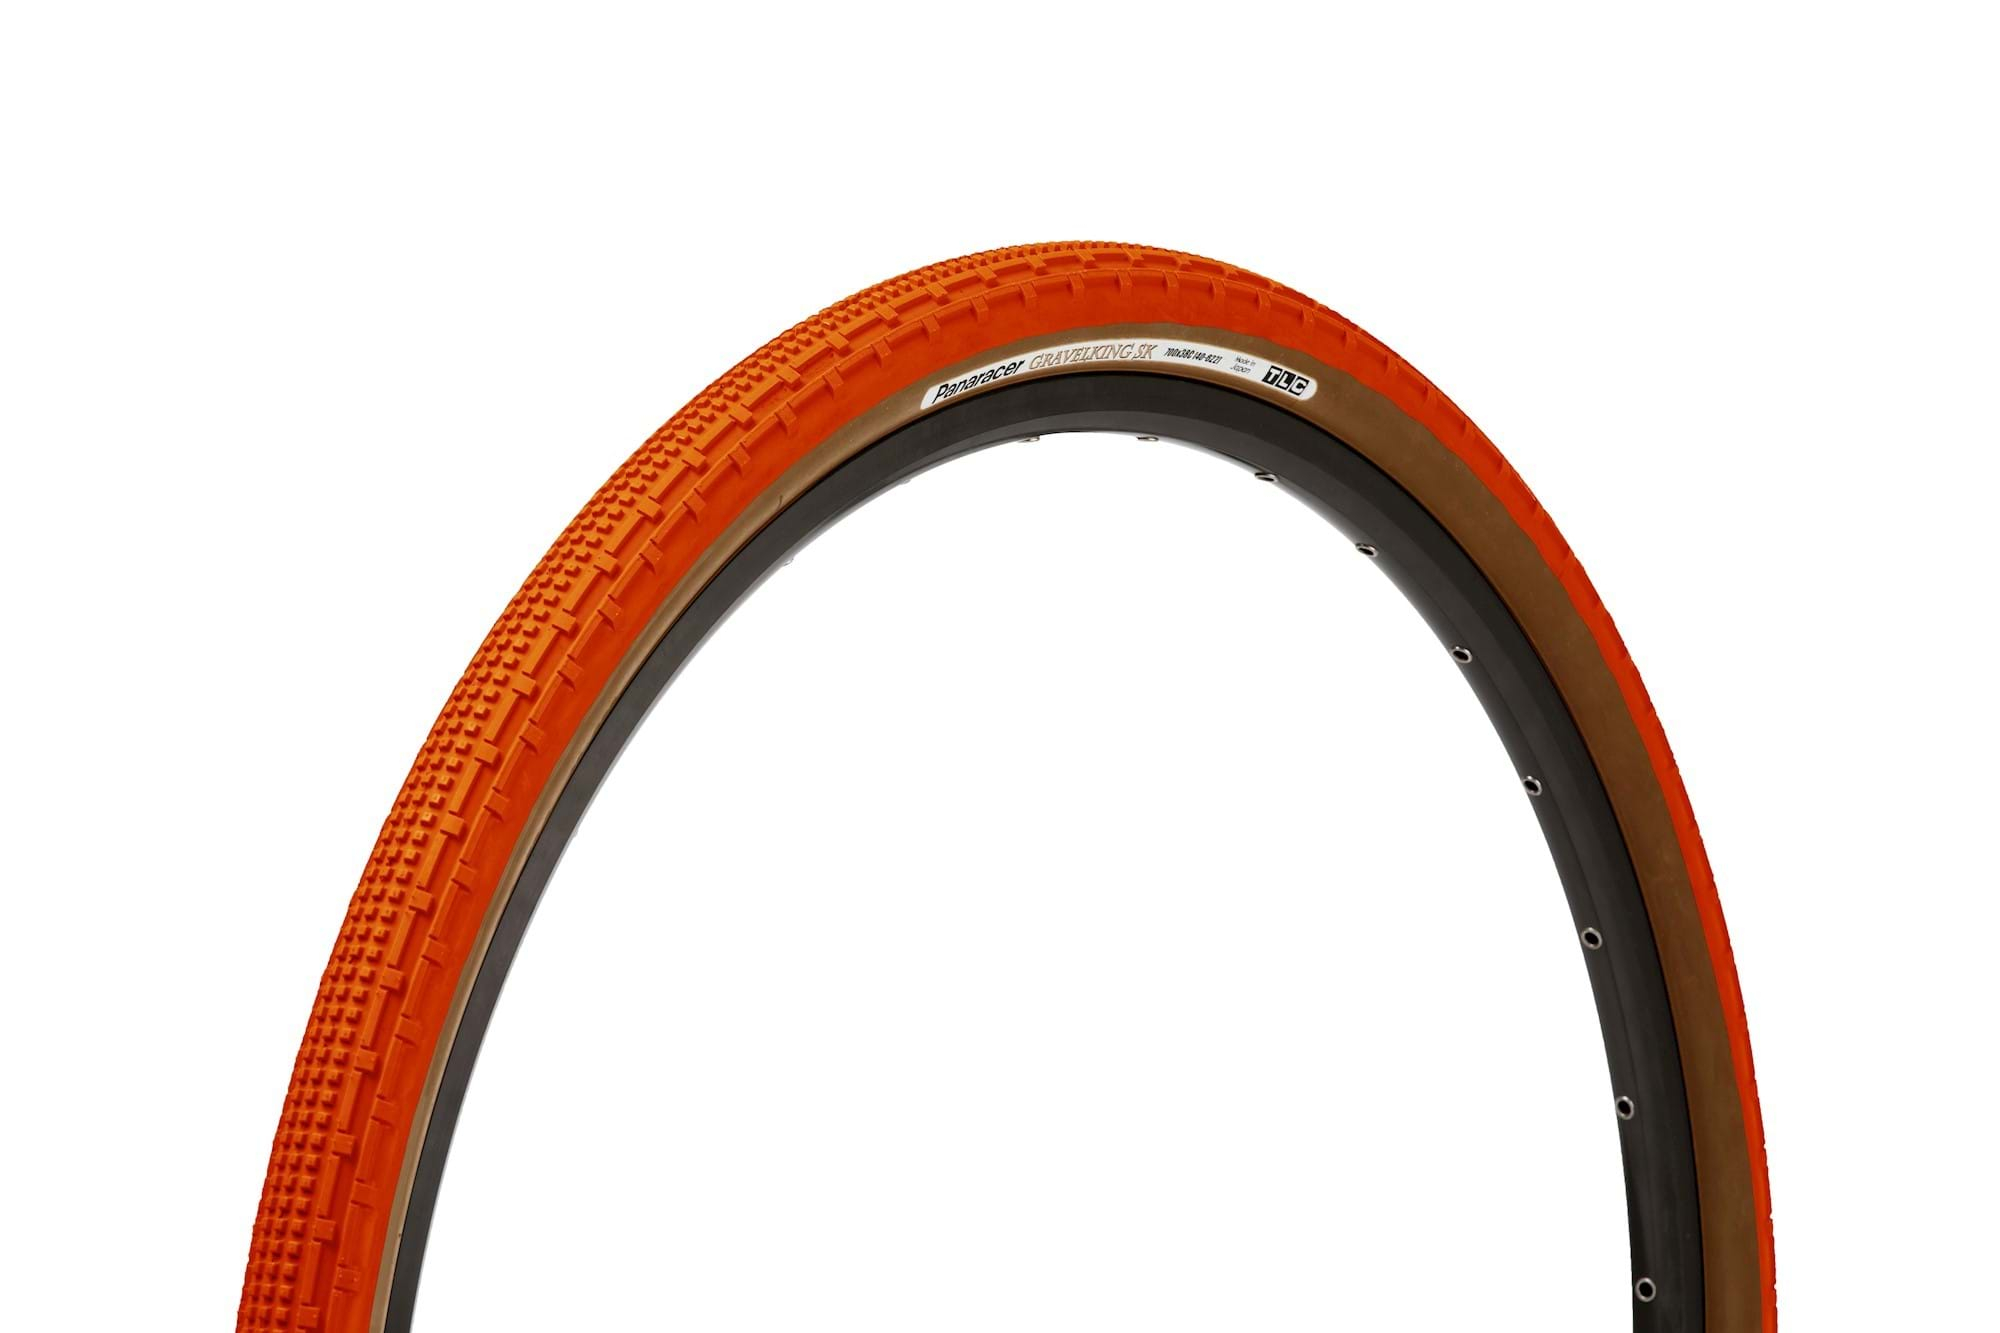 Panaracer GravelKing SK 700Cx38 Orange/brun - 3410990 | Dæk